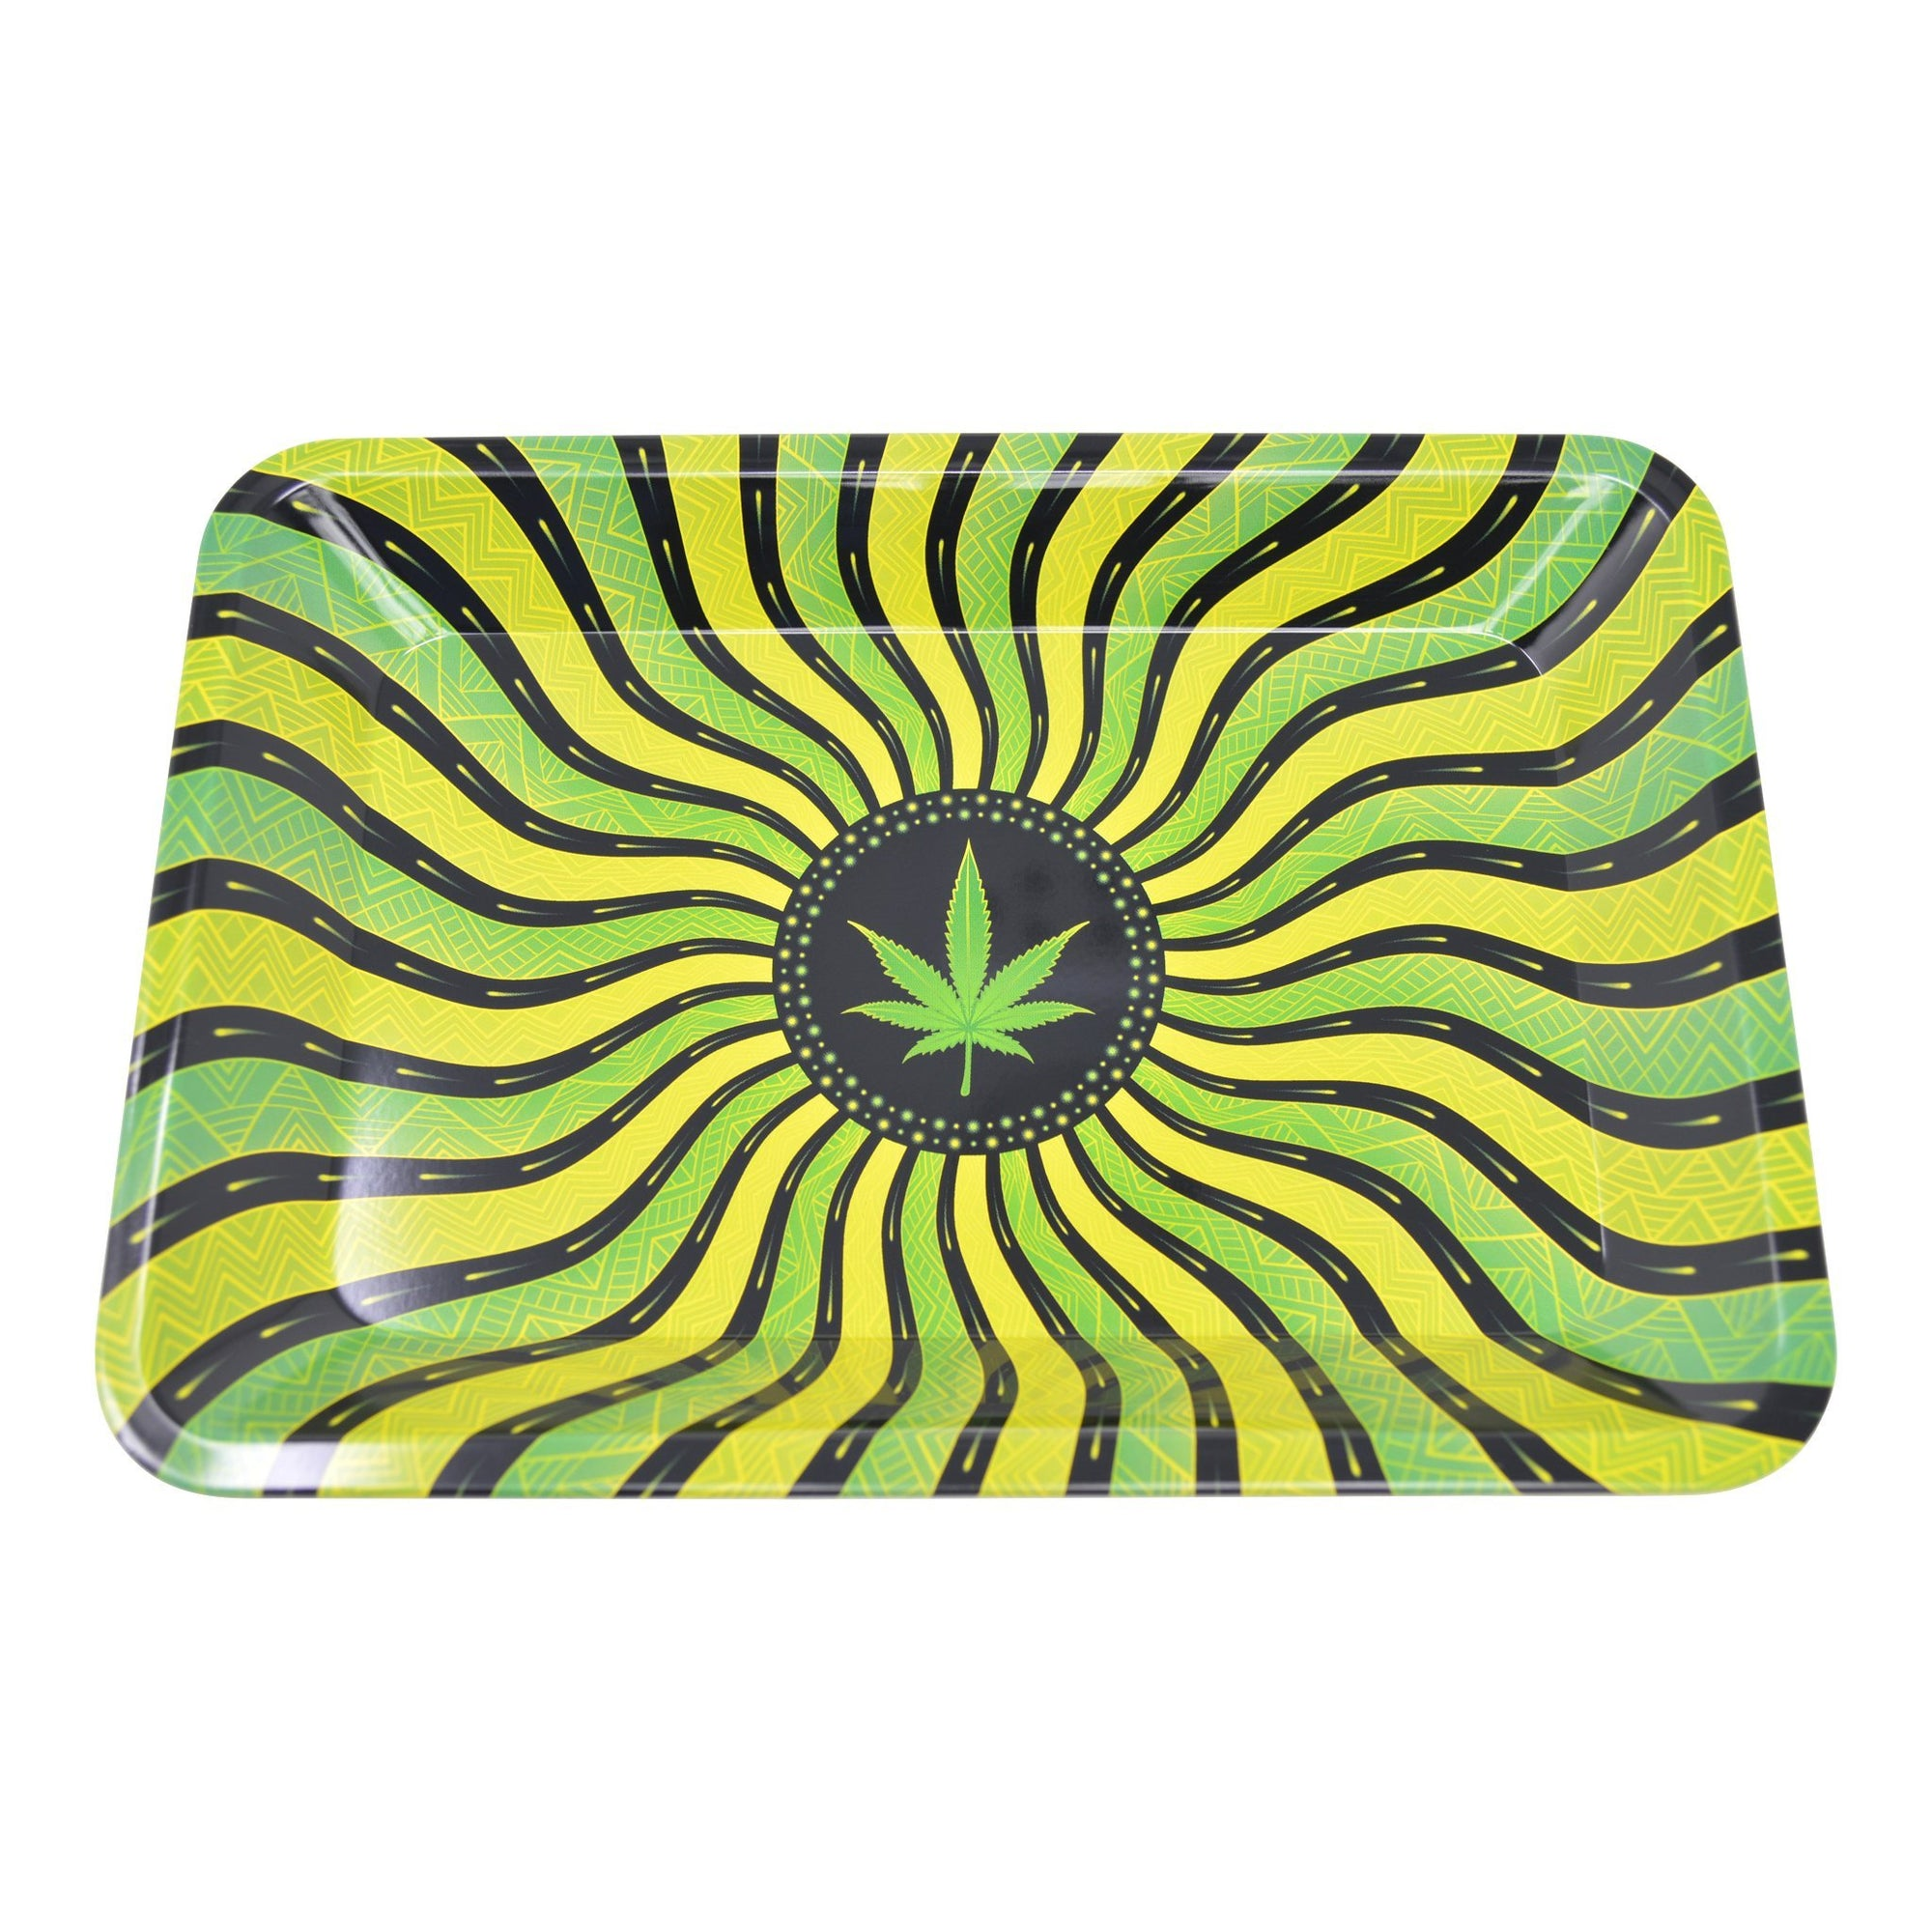 Full shot 5 inch metal rolling tray green weed leaf design at center yellow, black, green background sunrays look